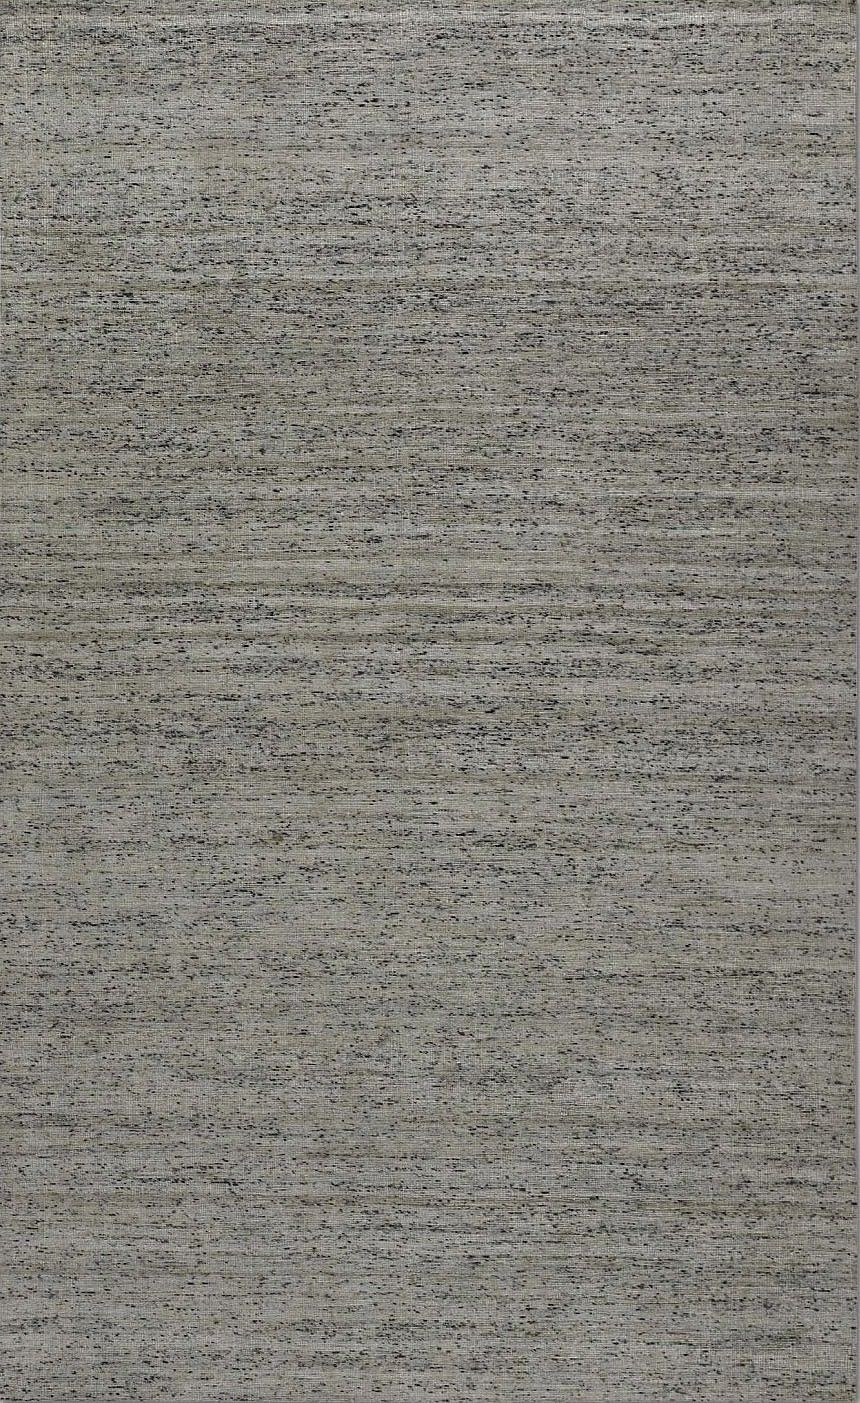 uttermost dacian contemporary area rug collection